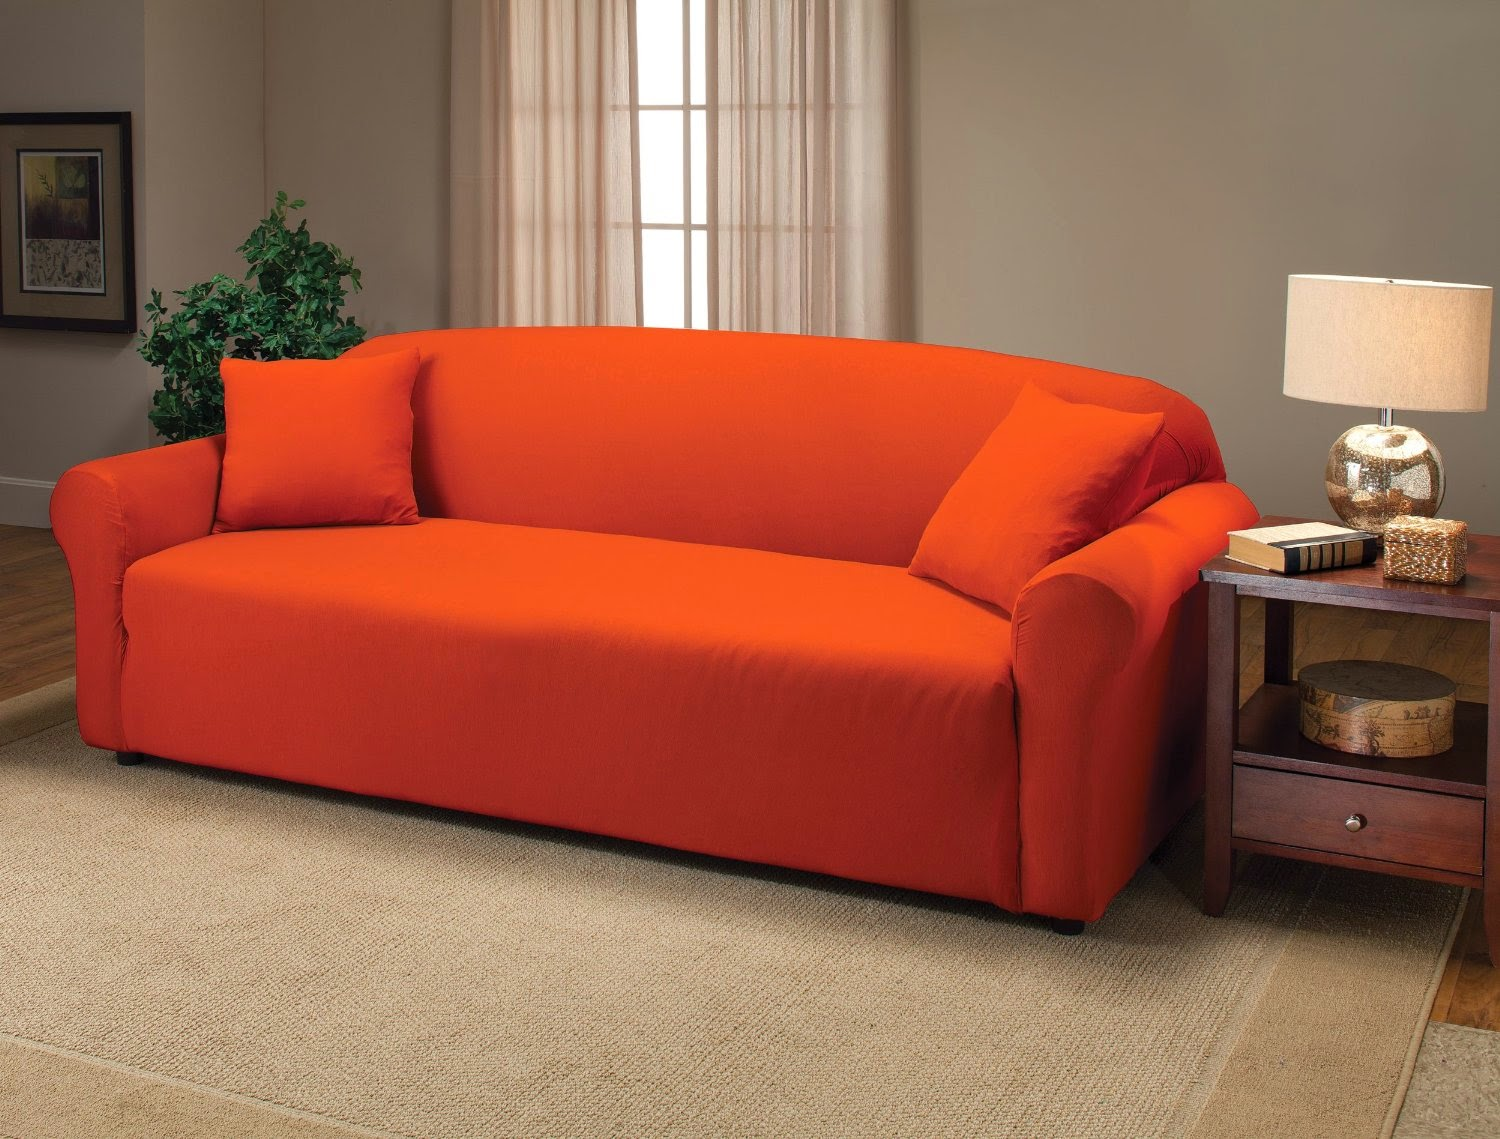 orange couch orange couch cover. Black Bedroom Furniture Sets. Home Design Ideas